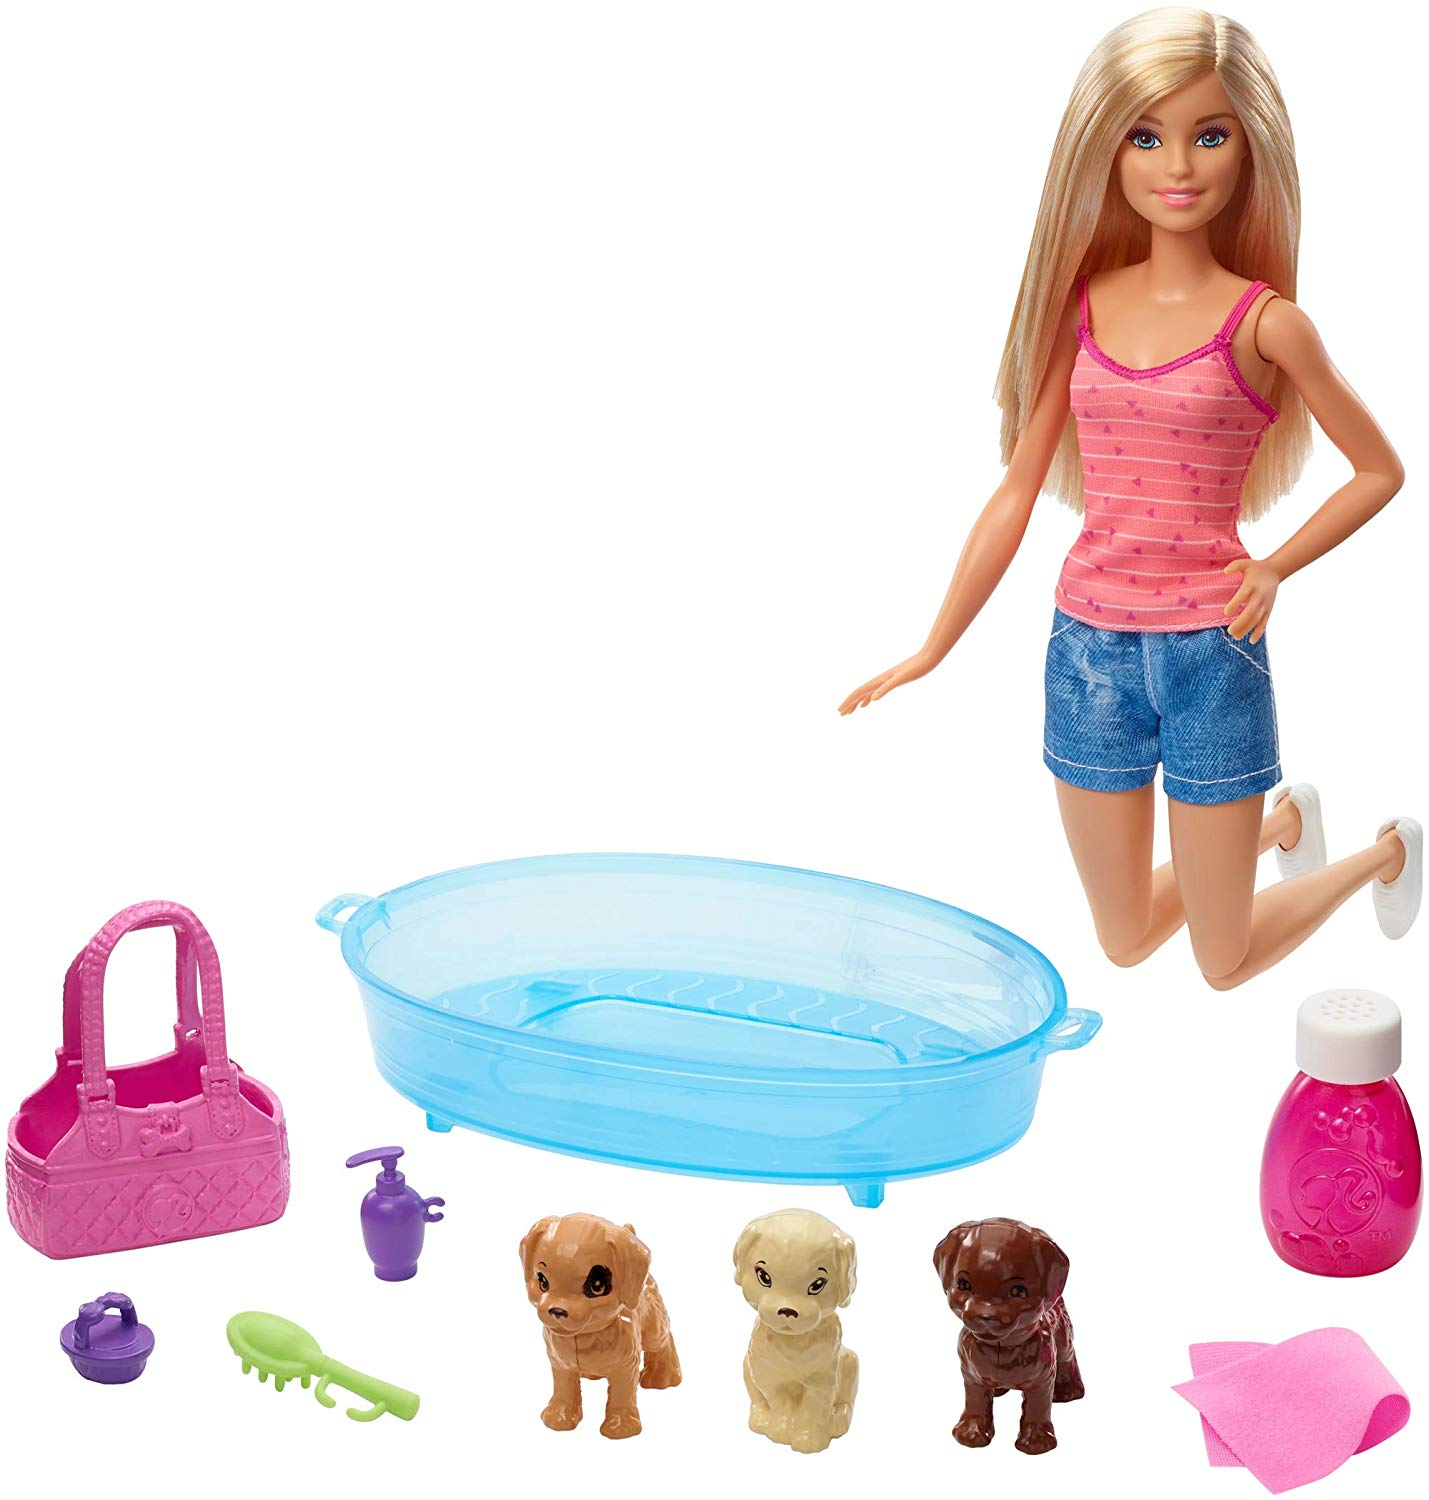 Barbie Doll GDJ37 Blonde and Playset with 3 Puppies, Bathtub and Accessories